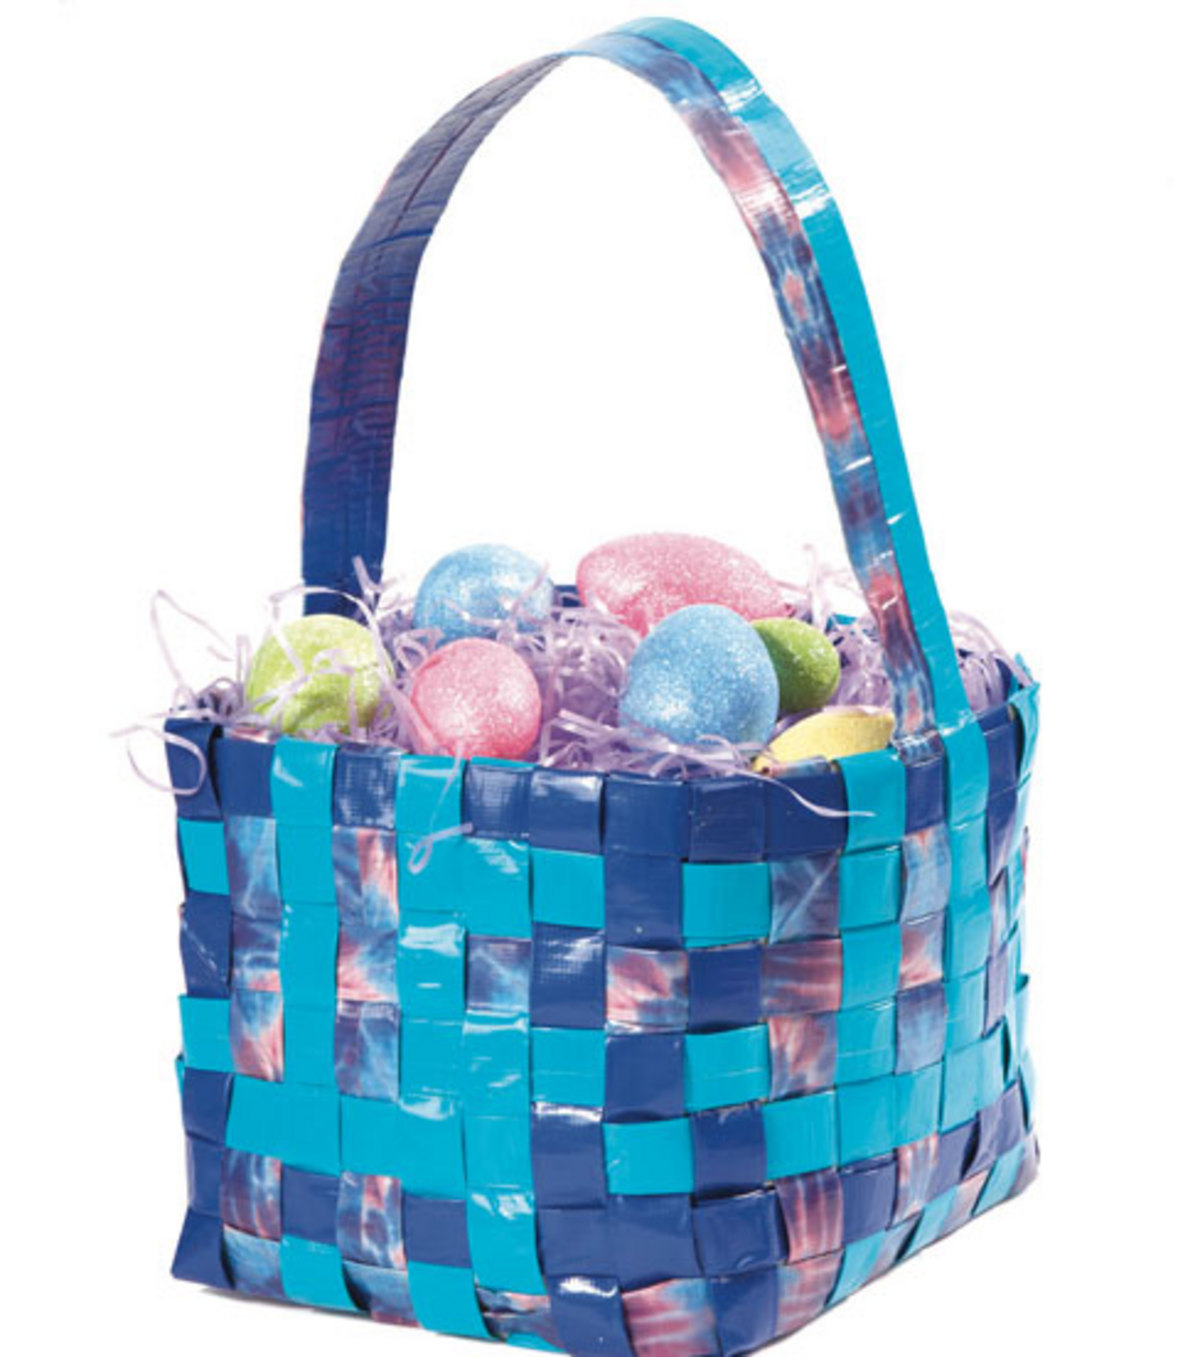 Duct tape easter basket joann duct tape easter basket negle Images